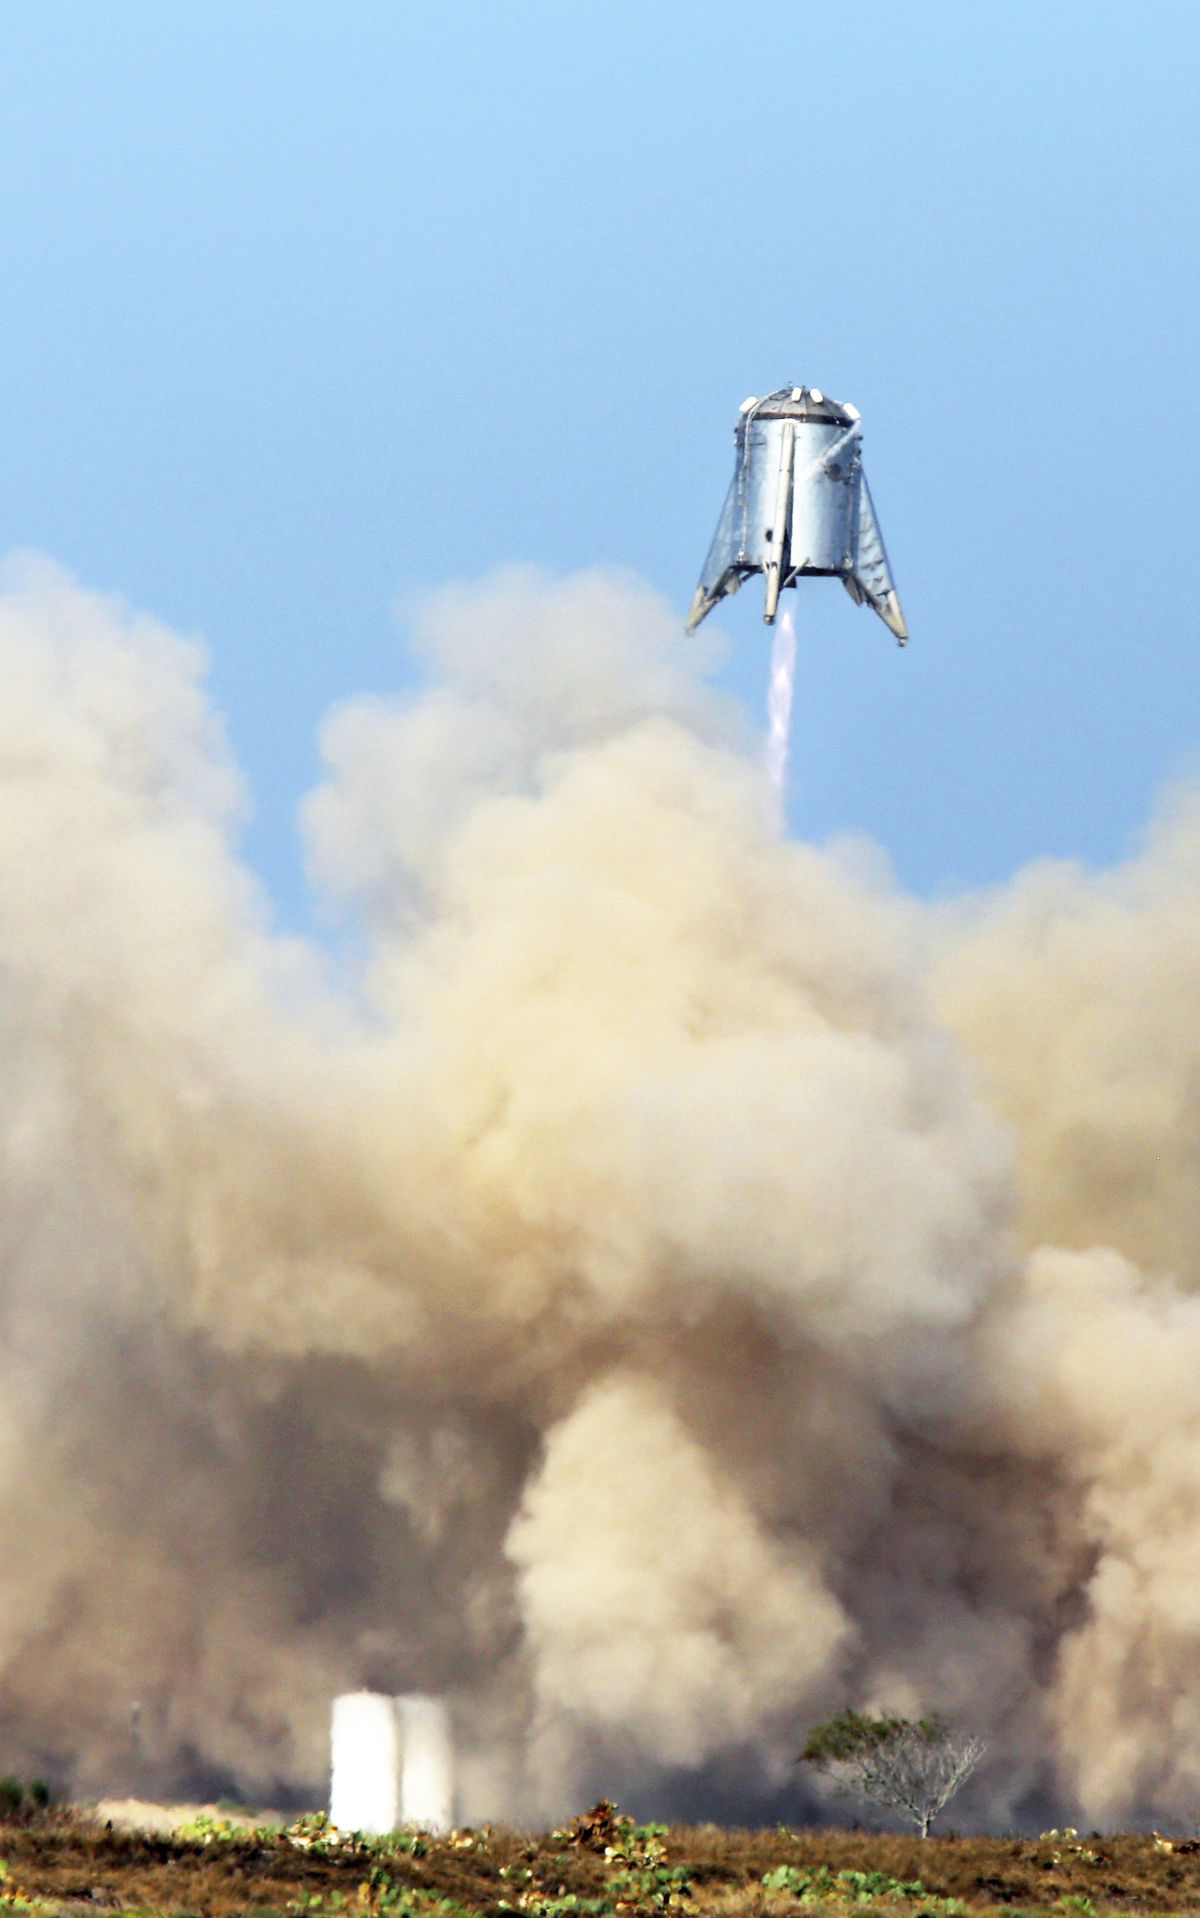 SpaceX's Mars rocket prototype rattles Texas residents